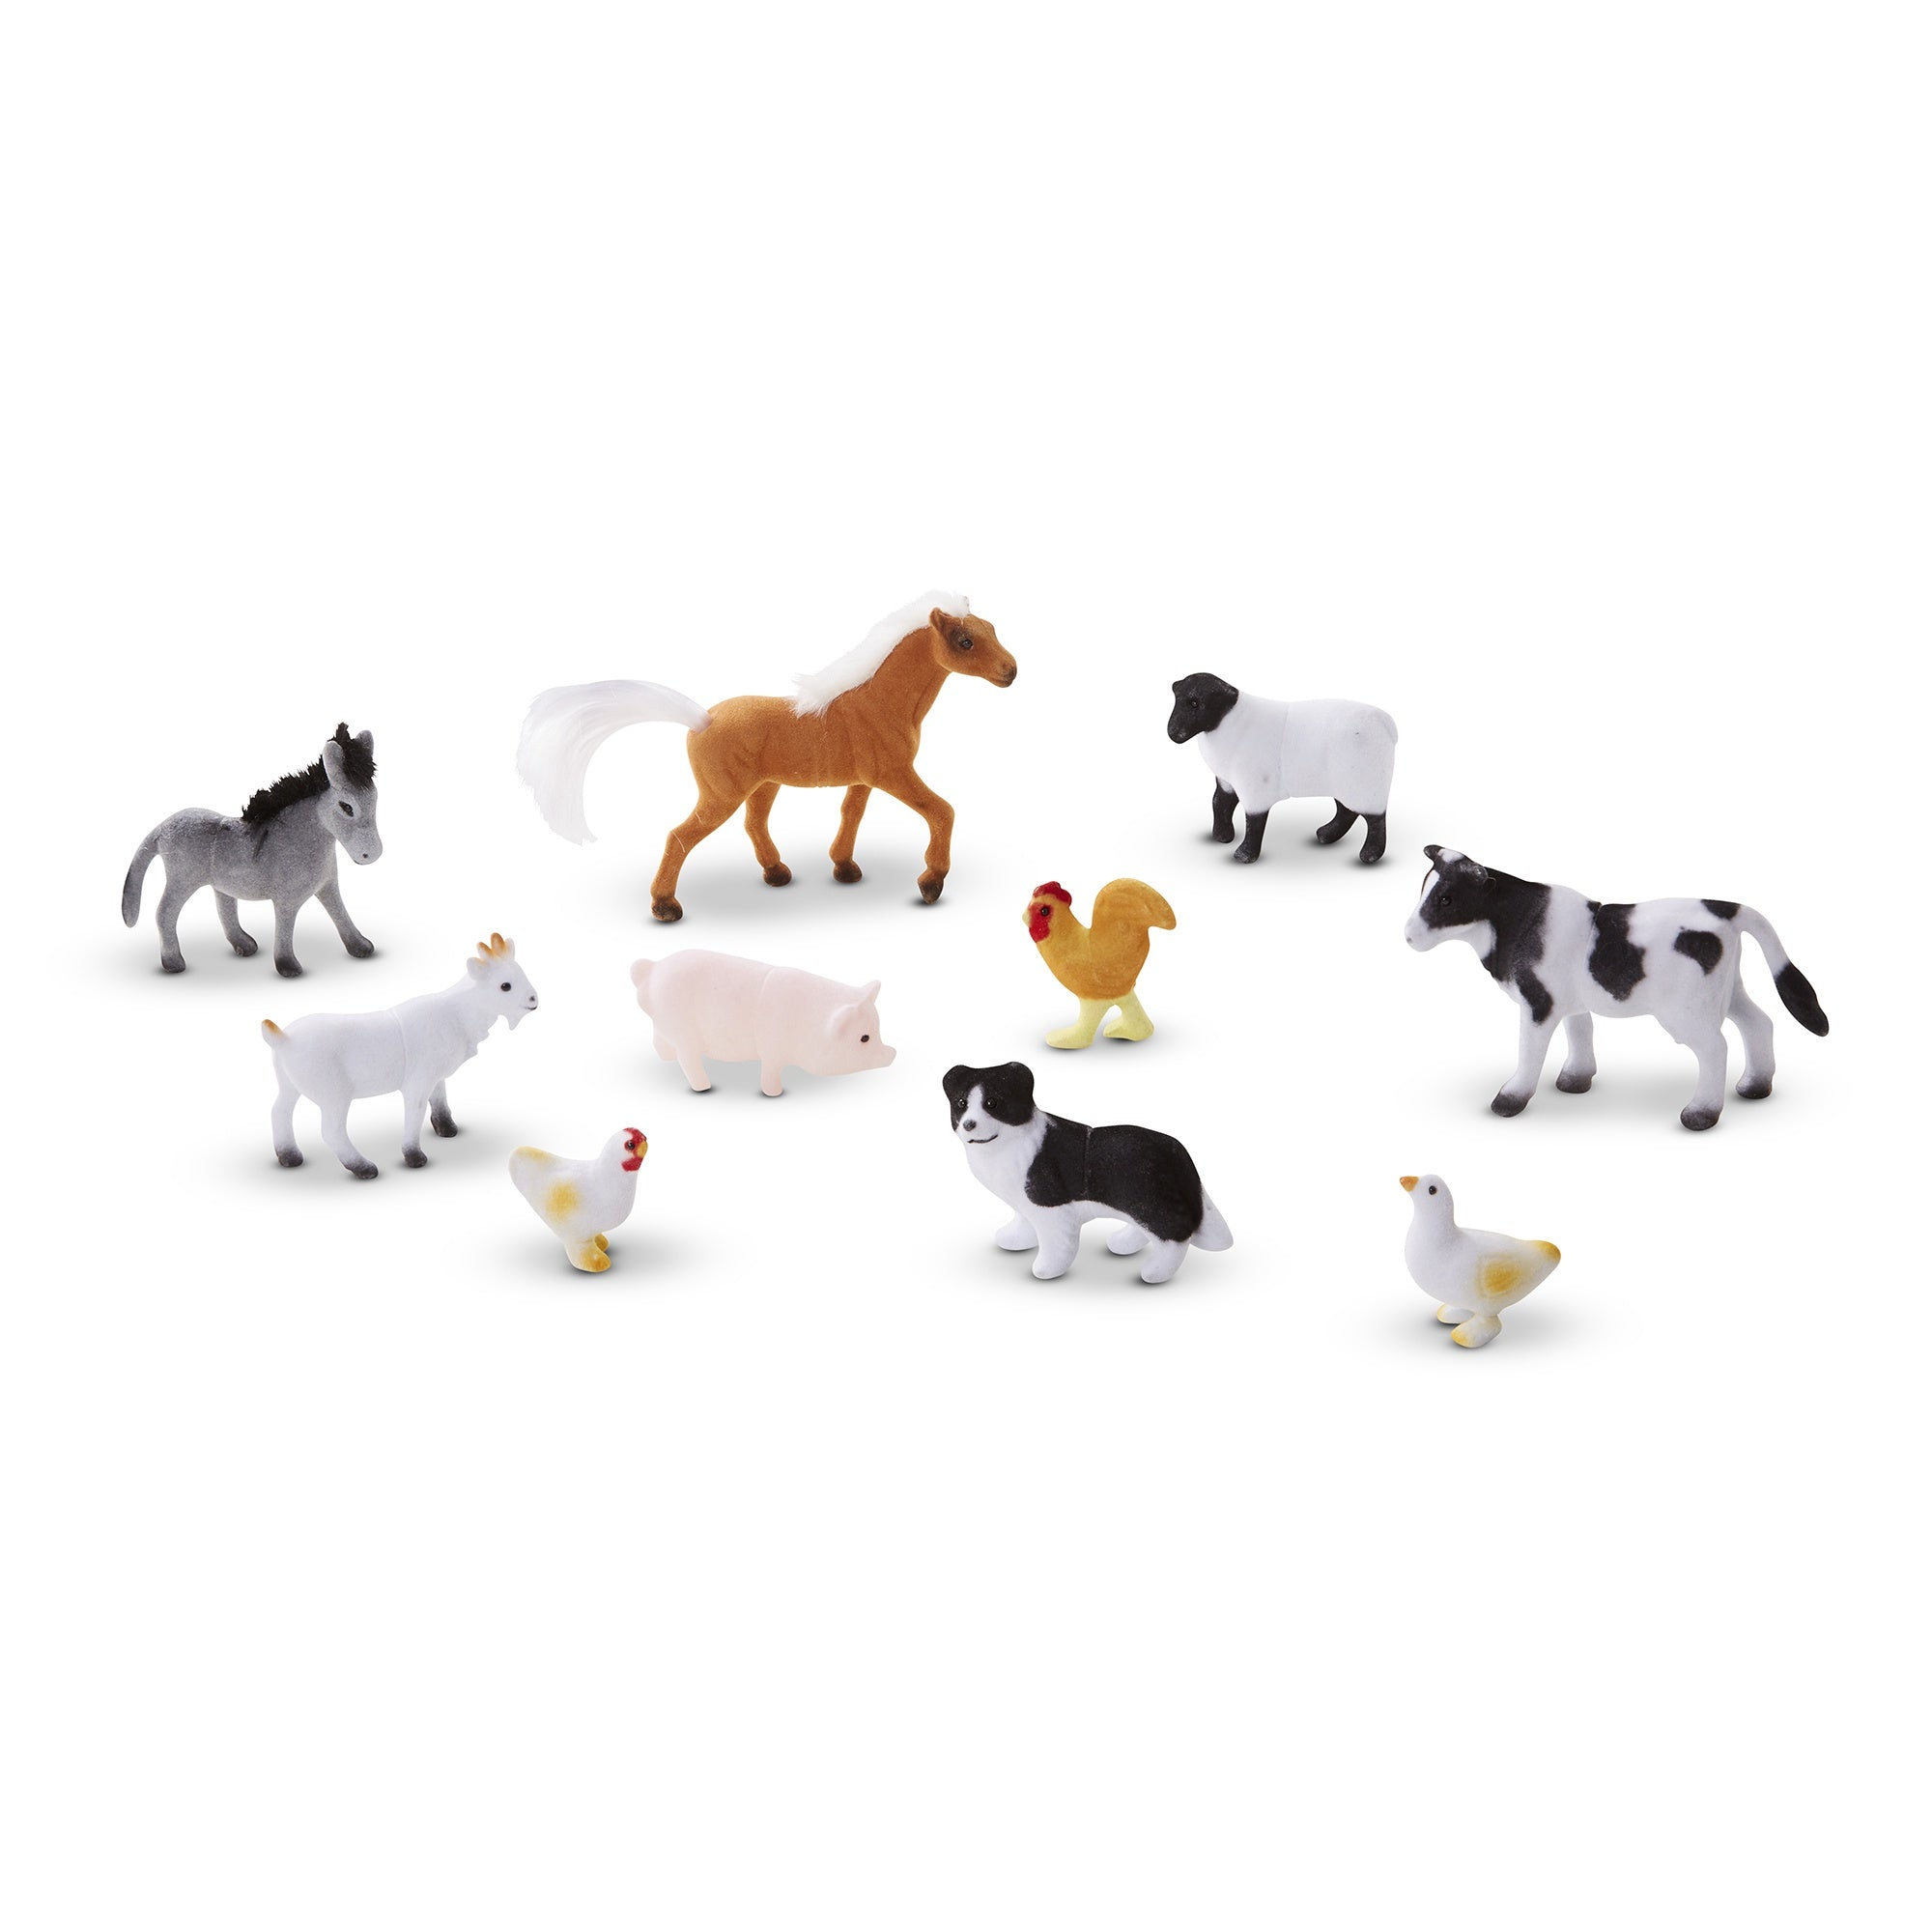 Melissa & Doug Farm Friends Playset